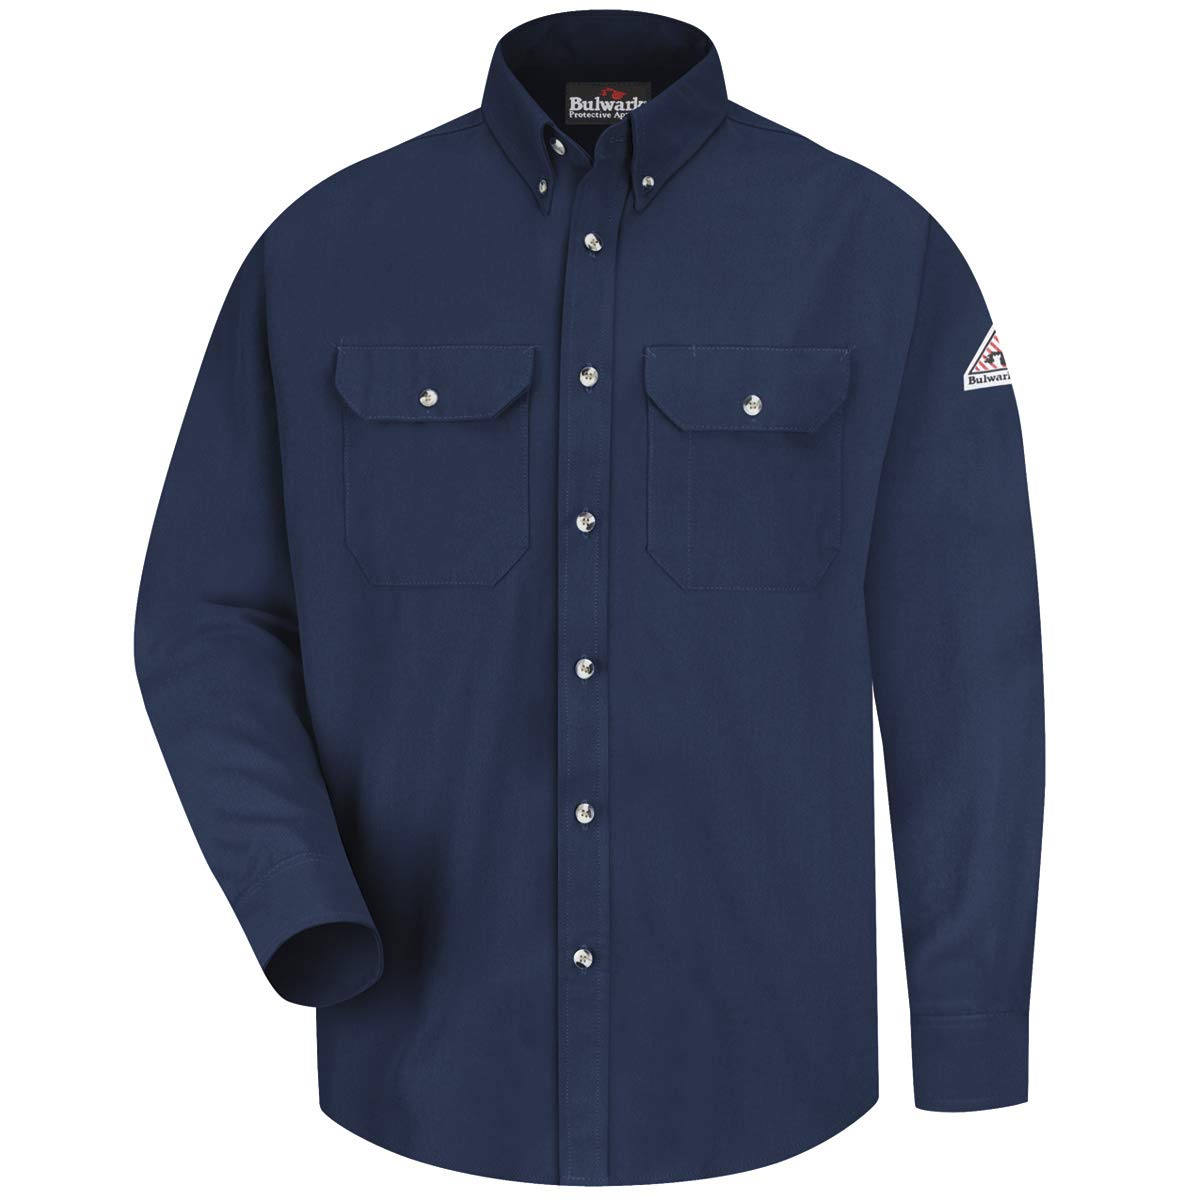 Bulwark Medium Navy Cool Touch 2 Flame Resistant Shirt With Button Closure